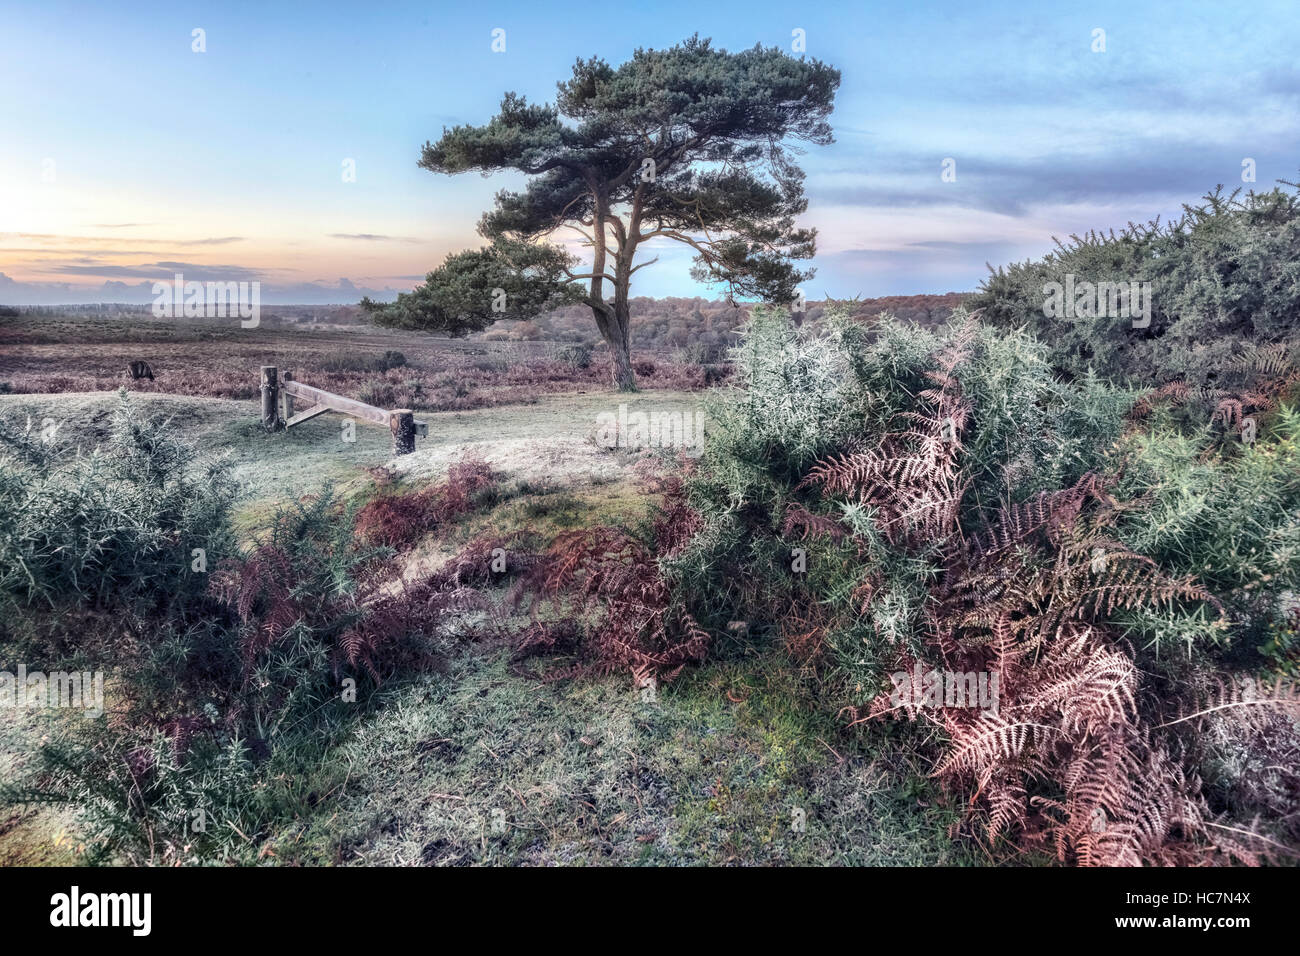 Bratley View, New Forest, Hampshire, England, UK - Stock Image